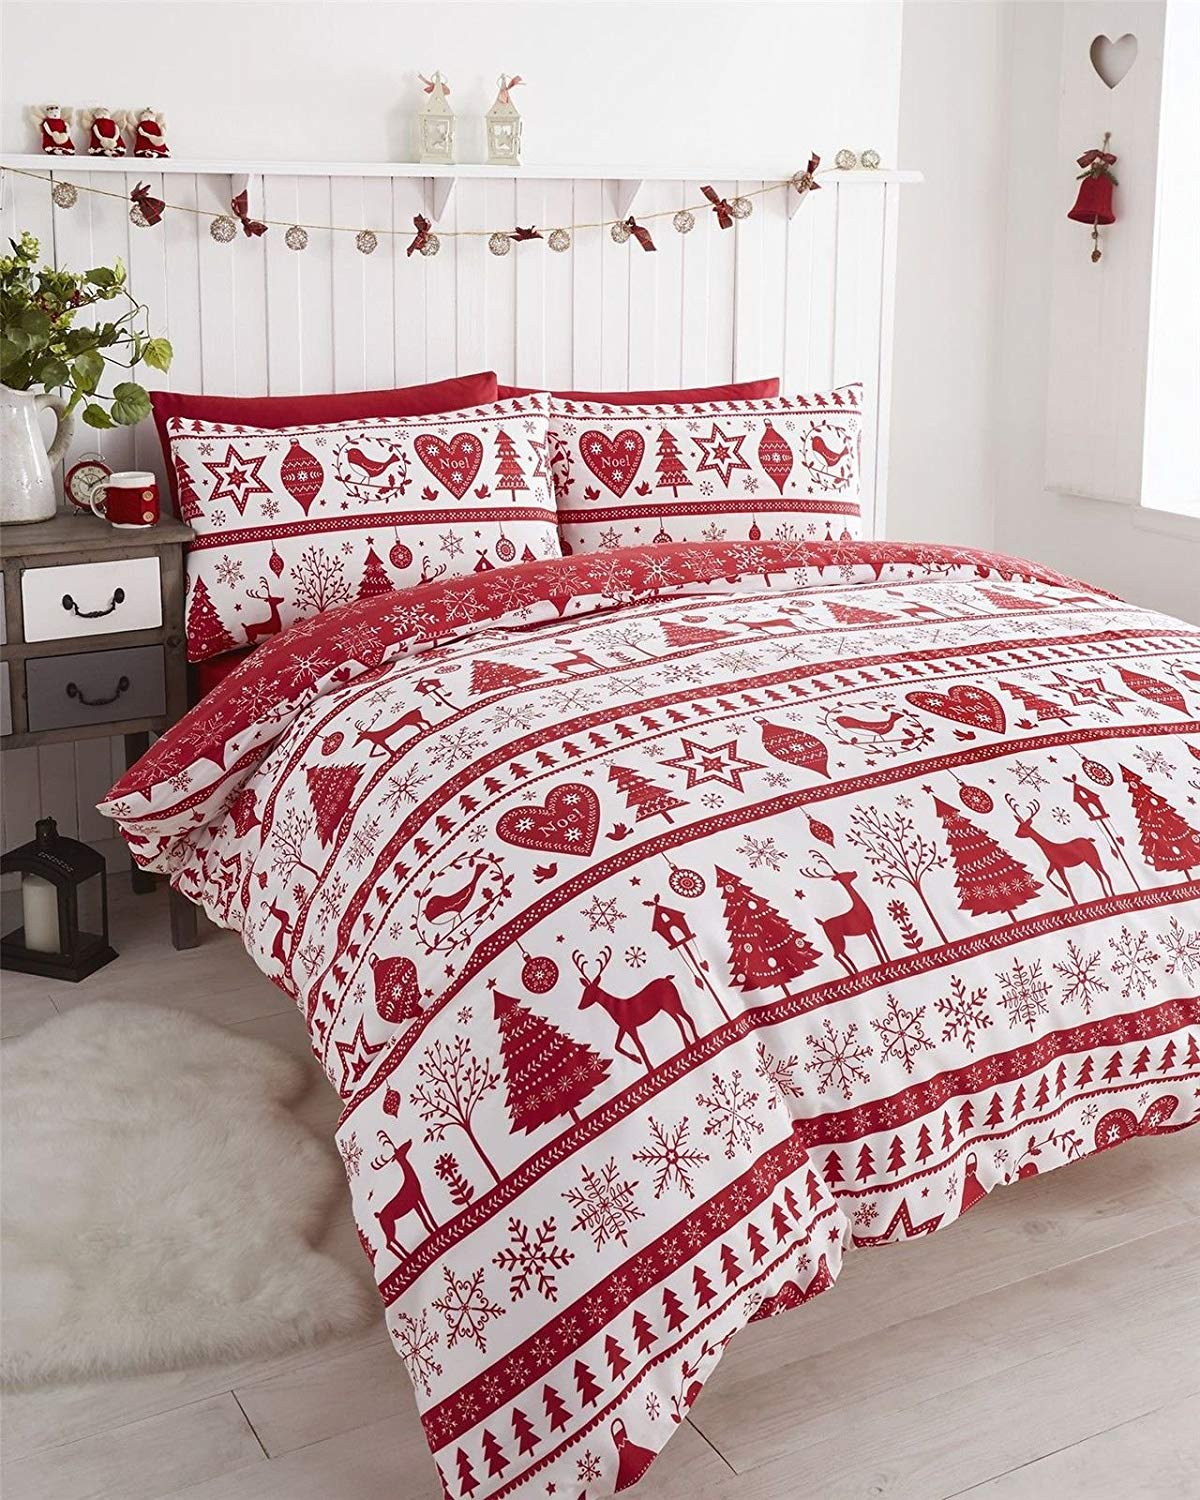 Best Christmas bedding. Nordic set from Amazon.